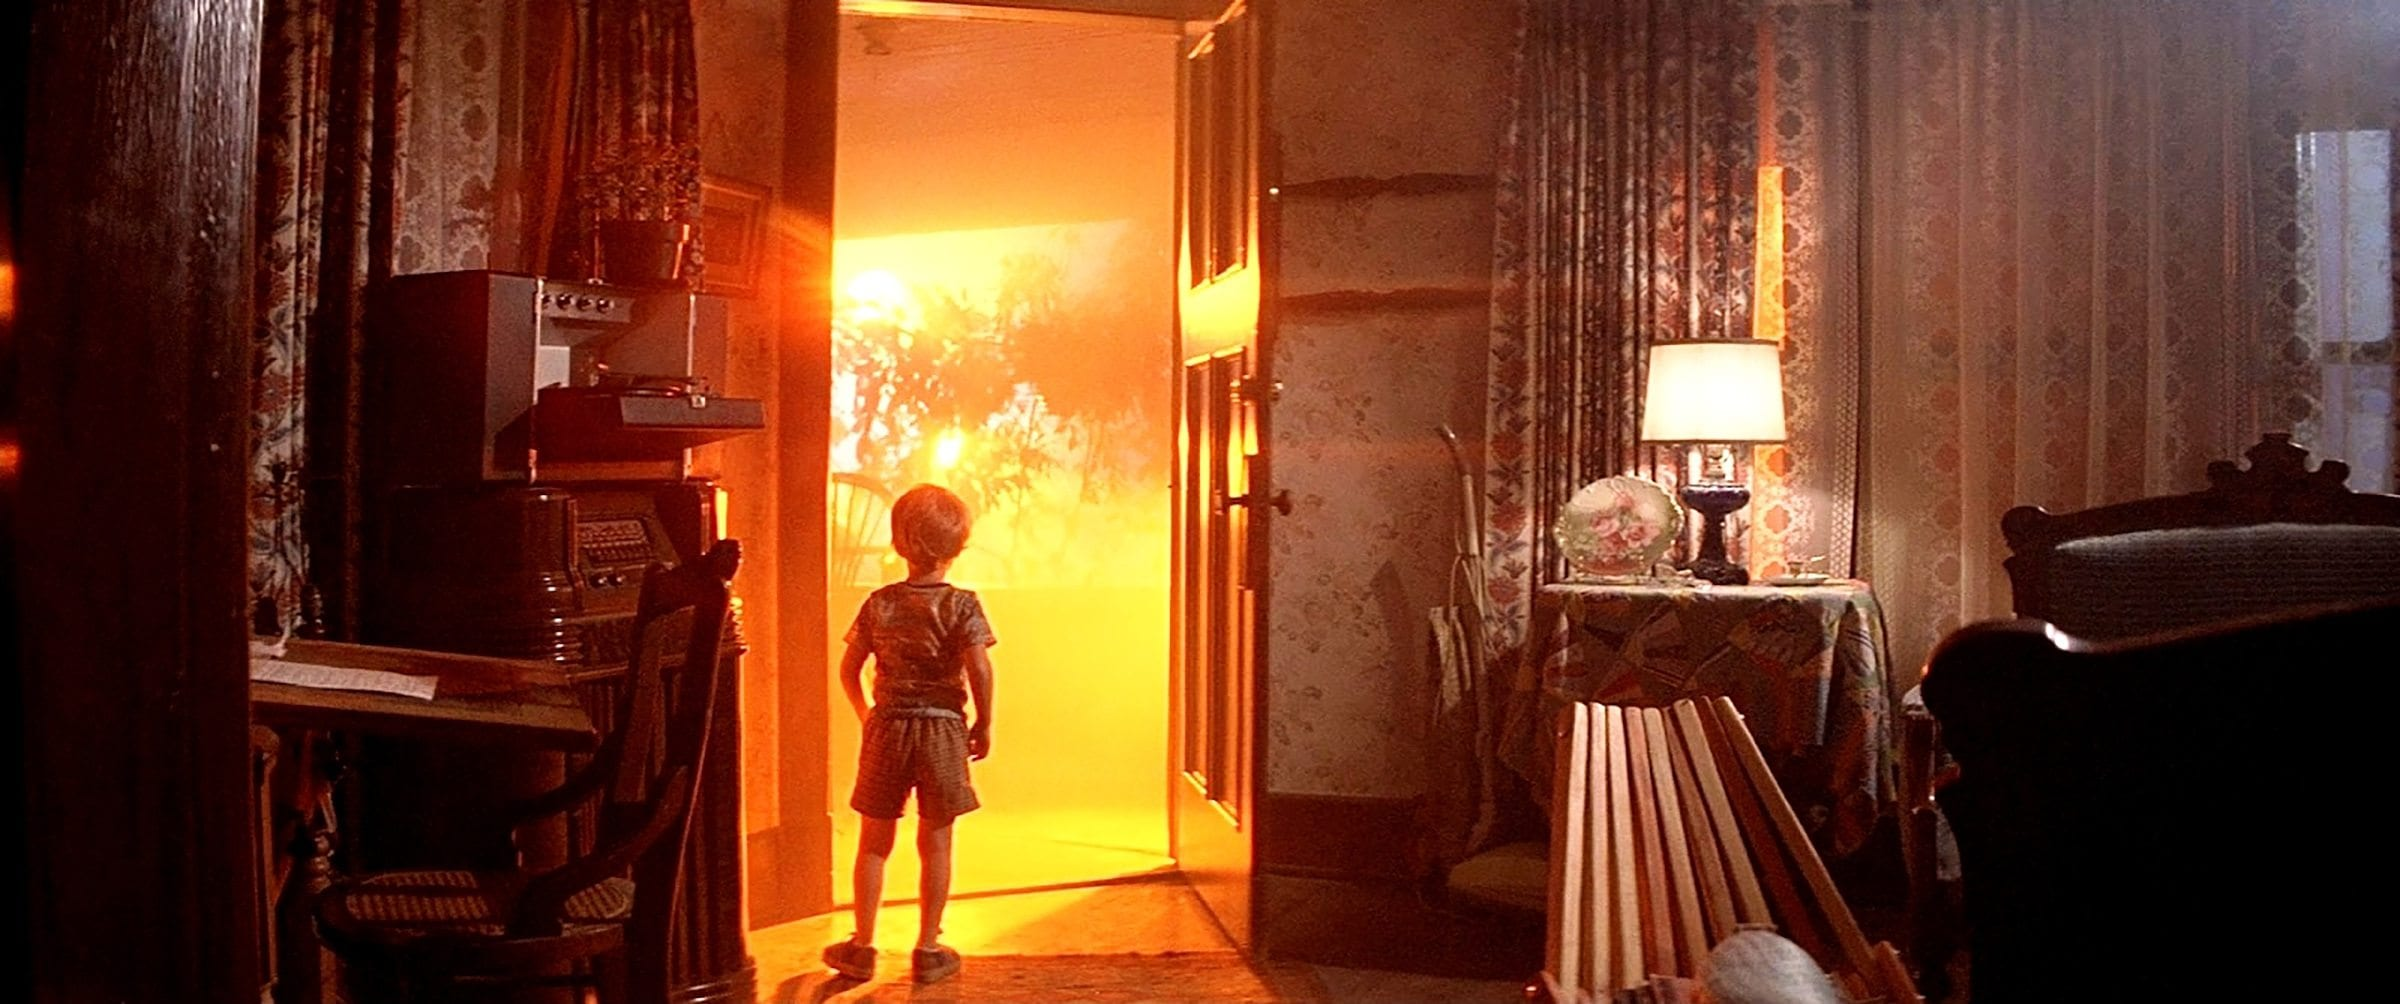 Risultati immagini per close encounters of the third kind truffaut